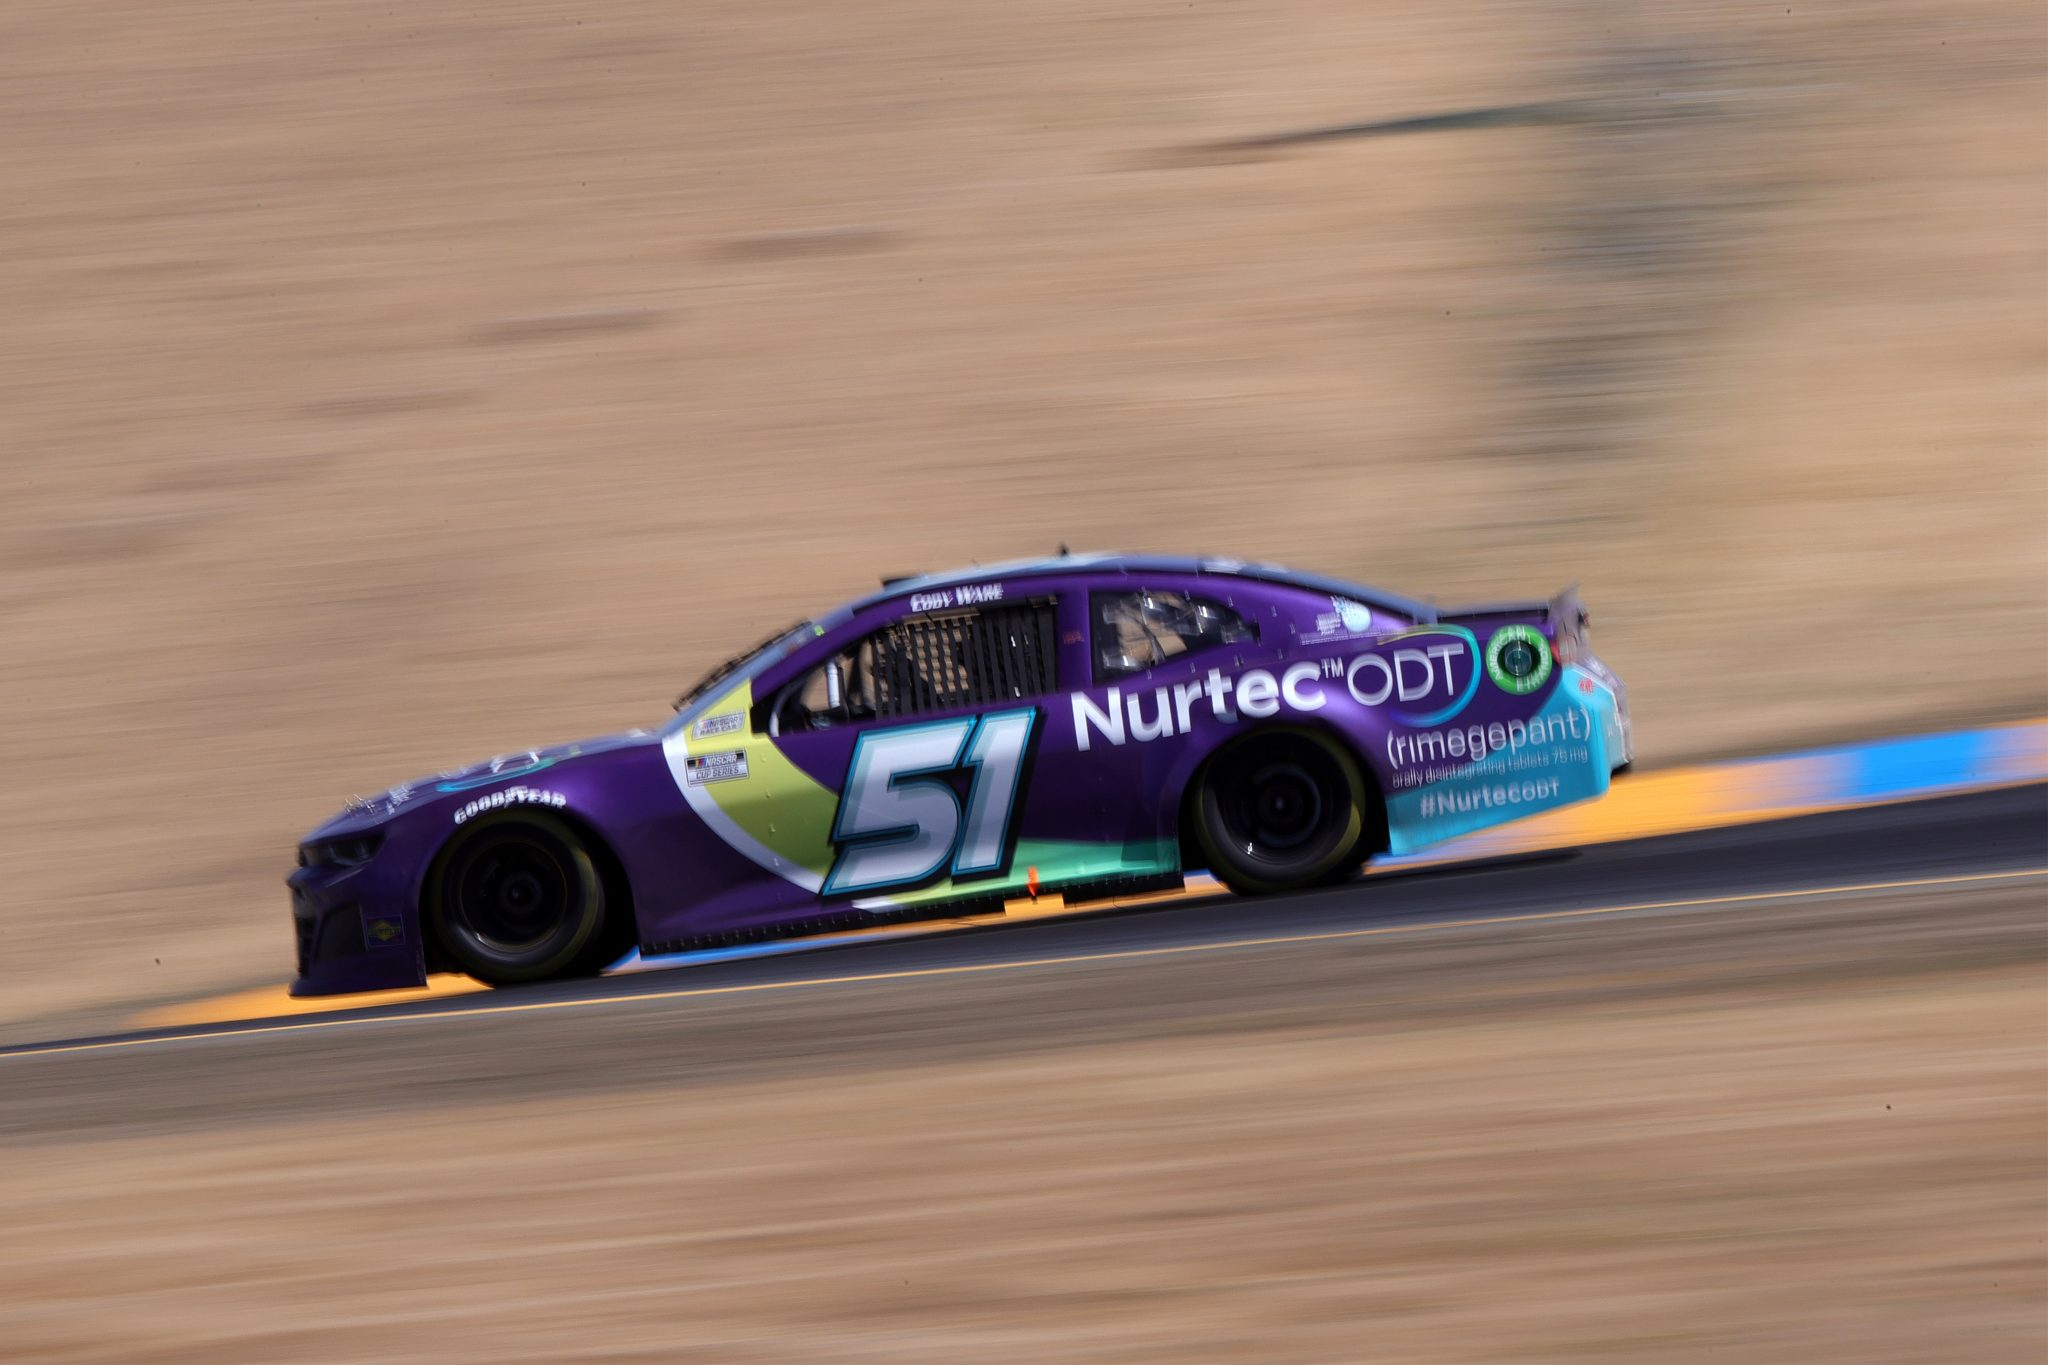 SONOMA, CALIFORNIA - JUNE 06: Cody Ware, driver of the #51 Nurtec ODT Chevrolet, drives during the NASCAR Cup Series Toyota/Save Mart 350 at Sonoma Raceway on June 06, 2021 in Sonoma, California. (Photo by Carmen Mandato/Getty Images) | Getty Images